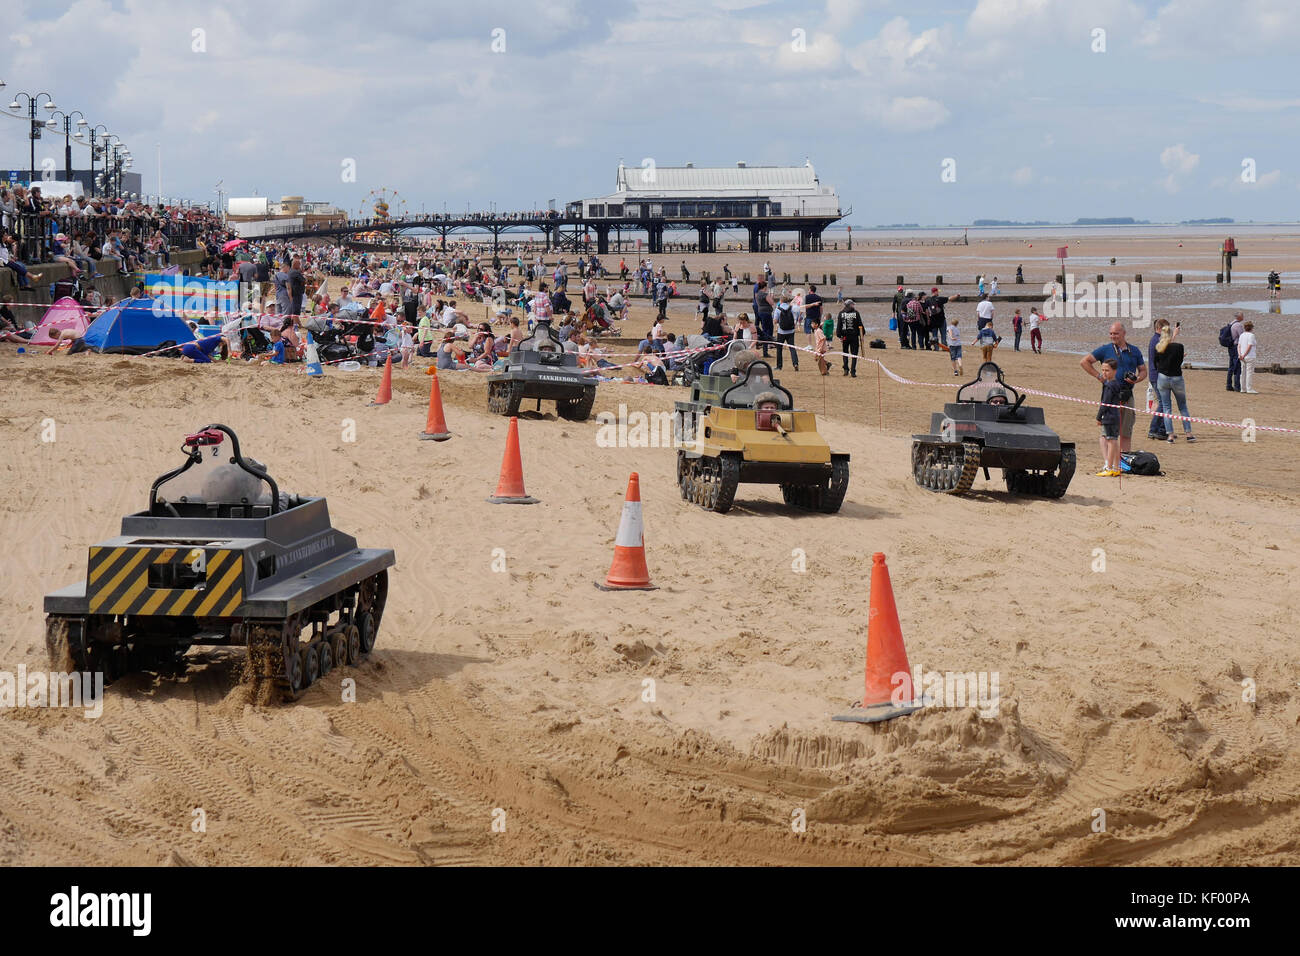 Children play in miniature model tanks on the beach at The